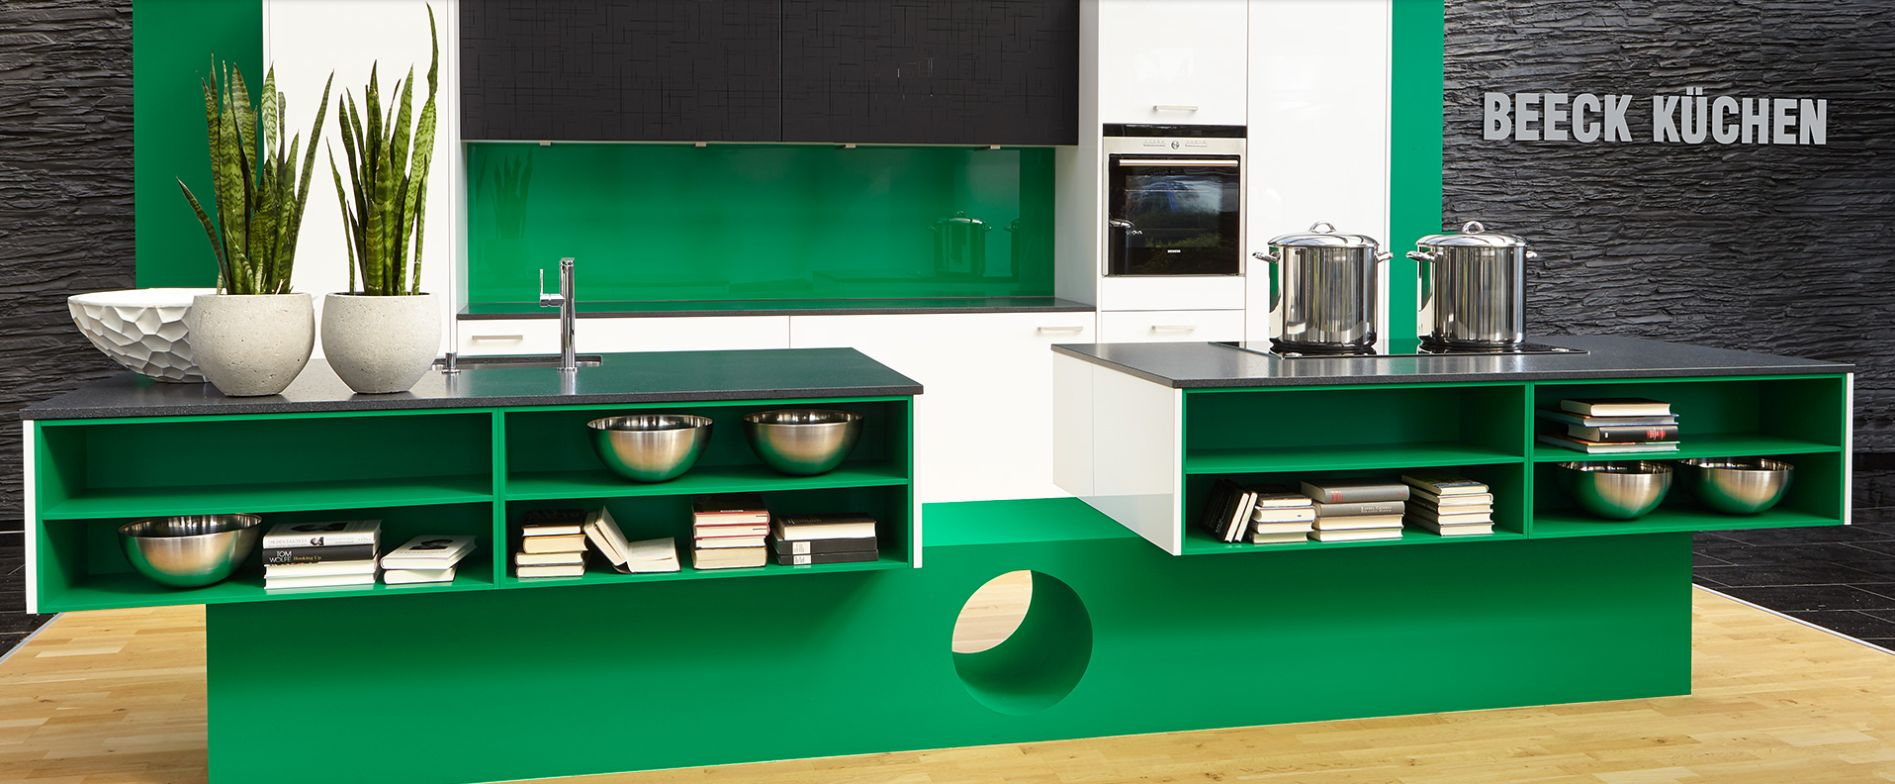 Beeck kitchen - living space kitchen